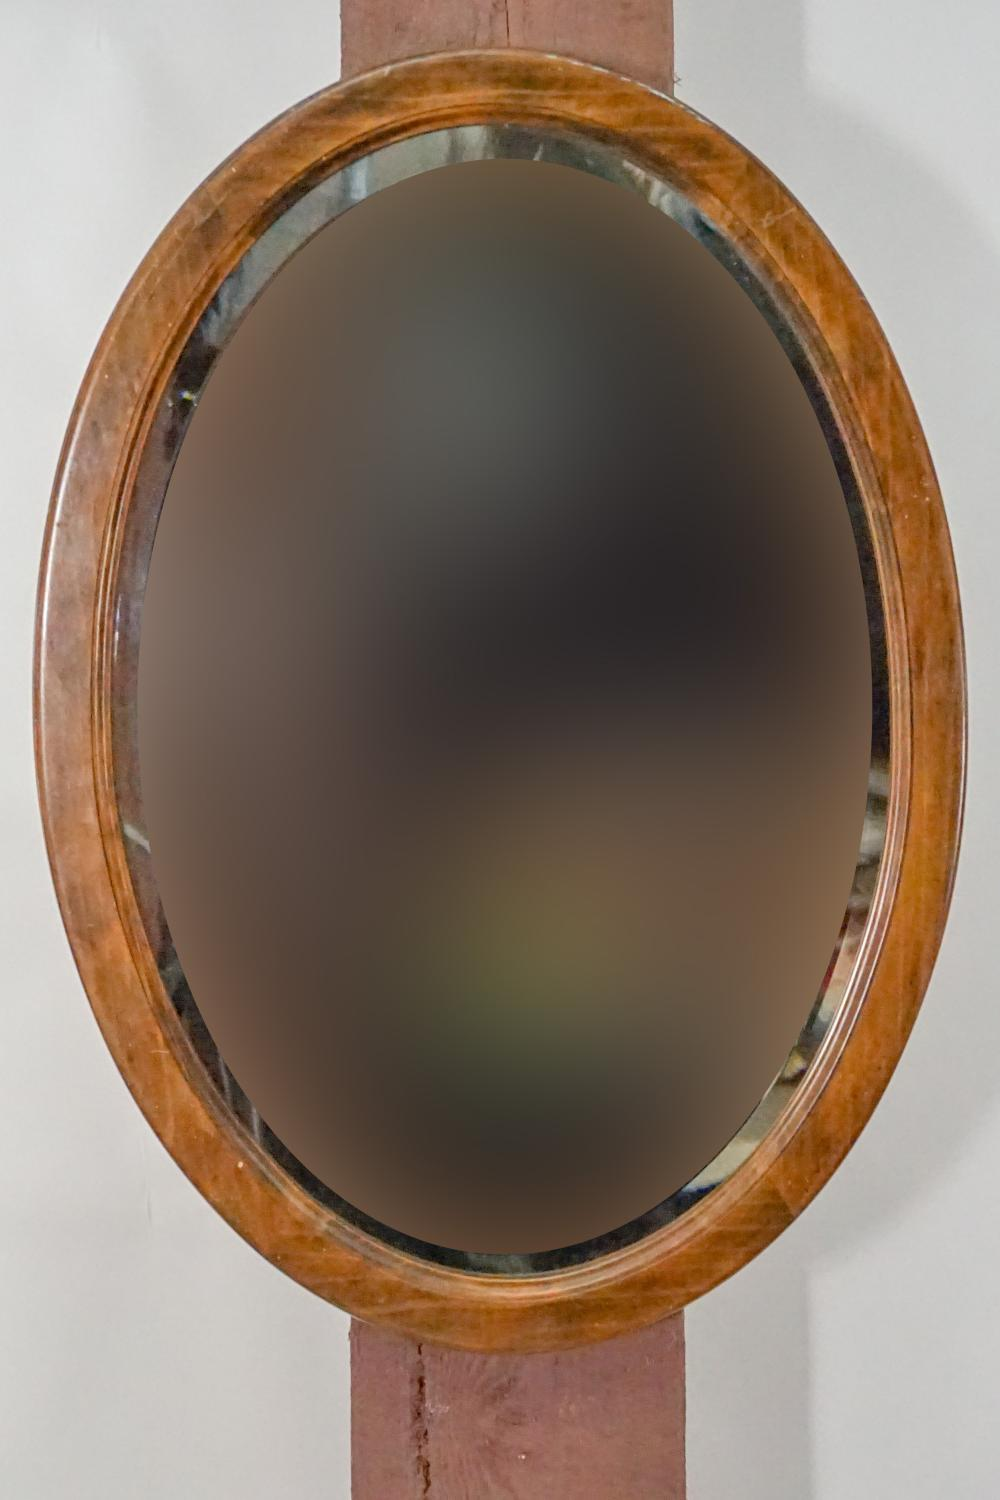 Mirror #2 - Oval